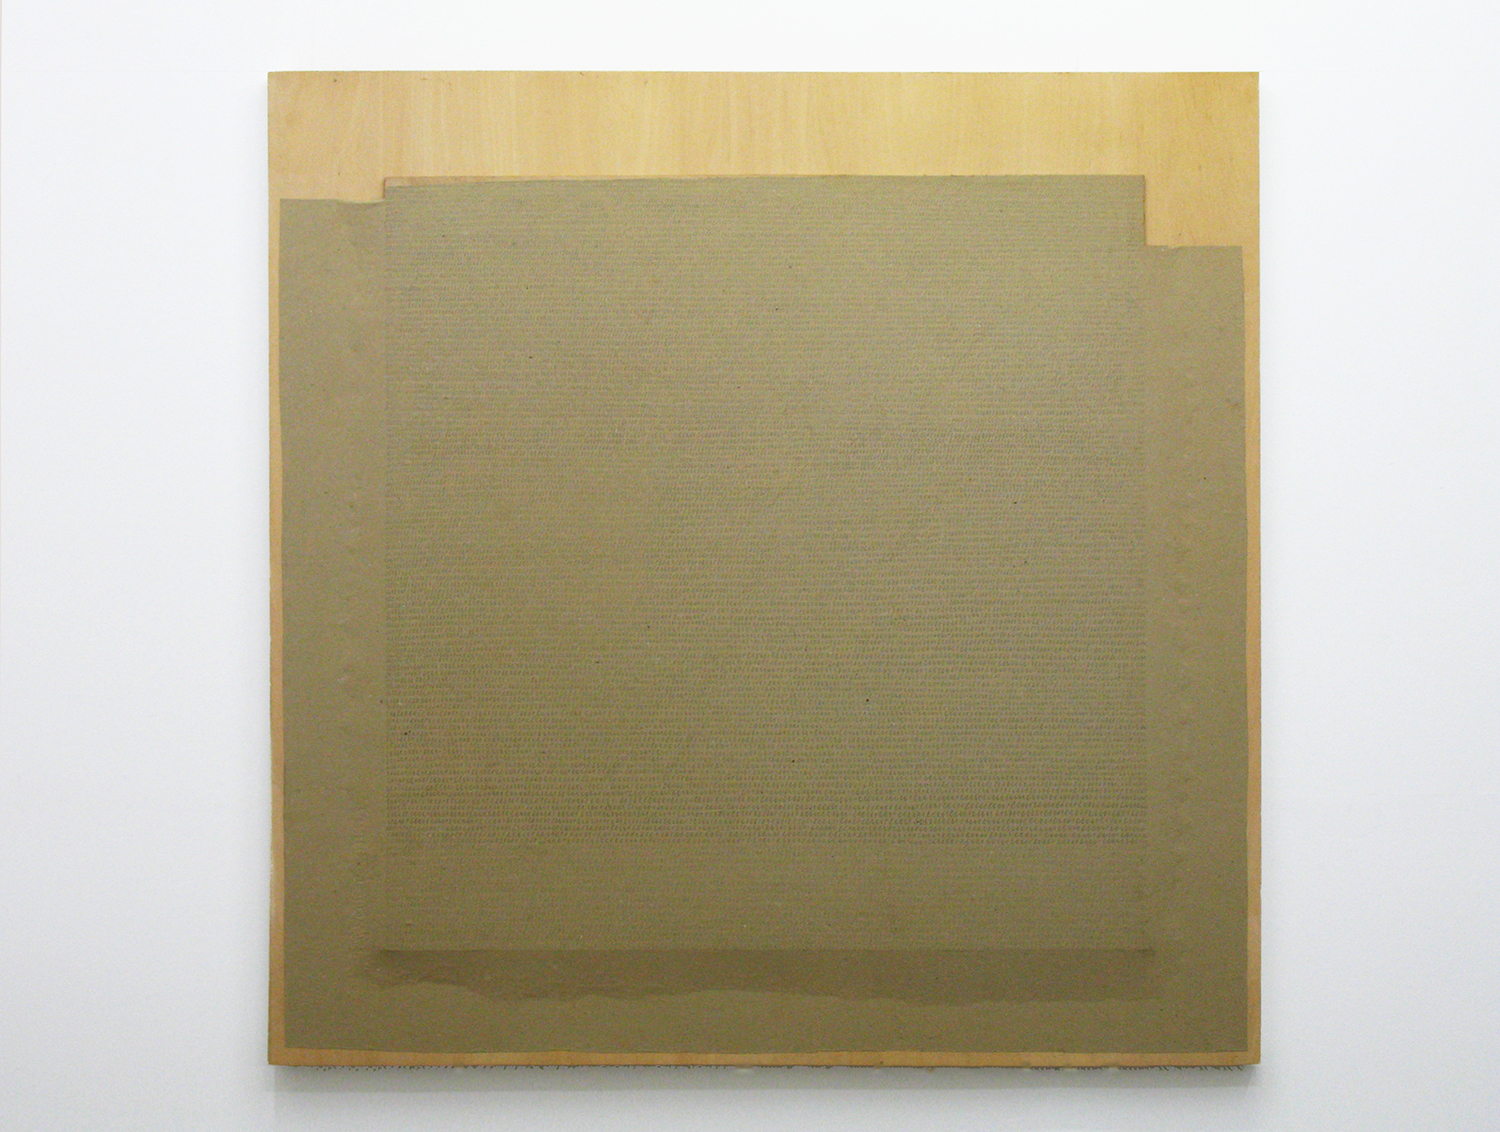 Paper drawing|pencil on paper on wooden panel|1970s